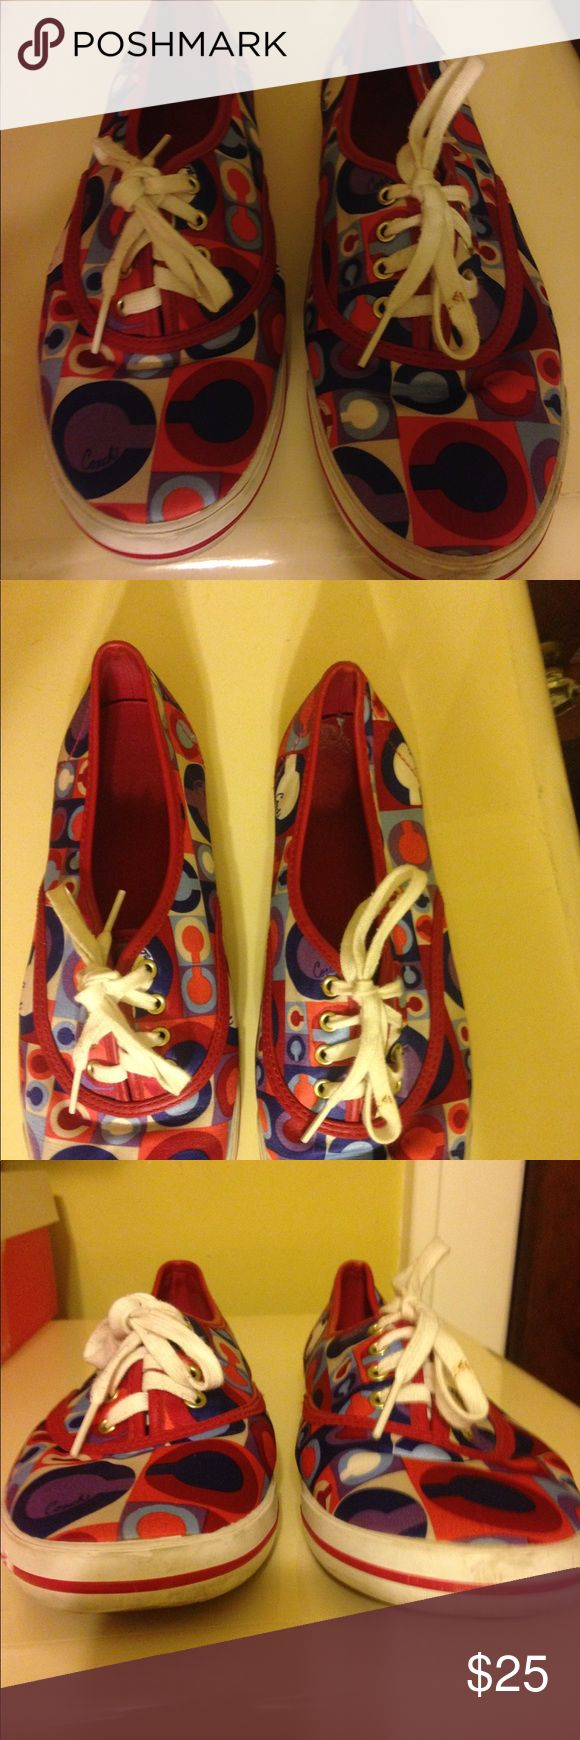 Authentic COACH tennis shoes Authentic COACH tennis shoes size 7.5 red white and blue colored great condition Coach Shoes Sneakers